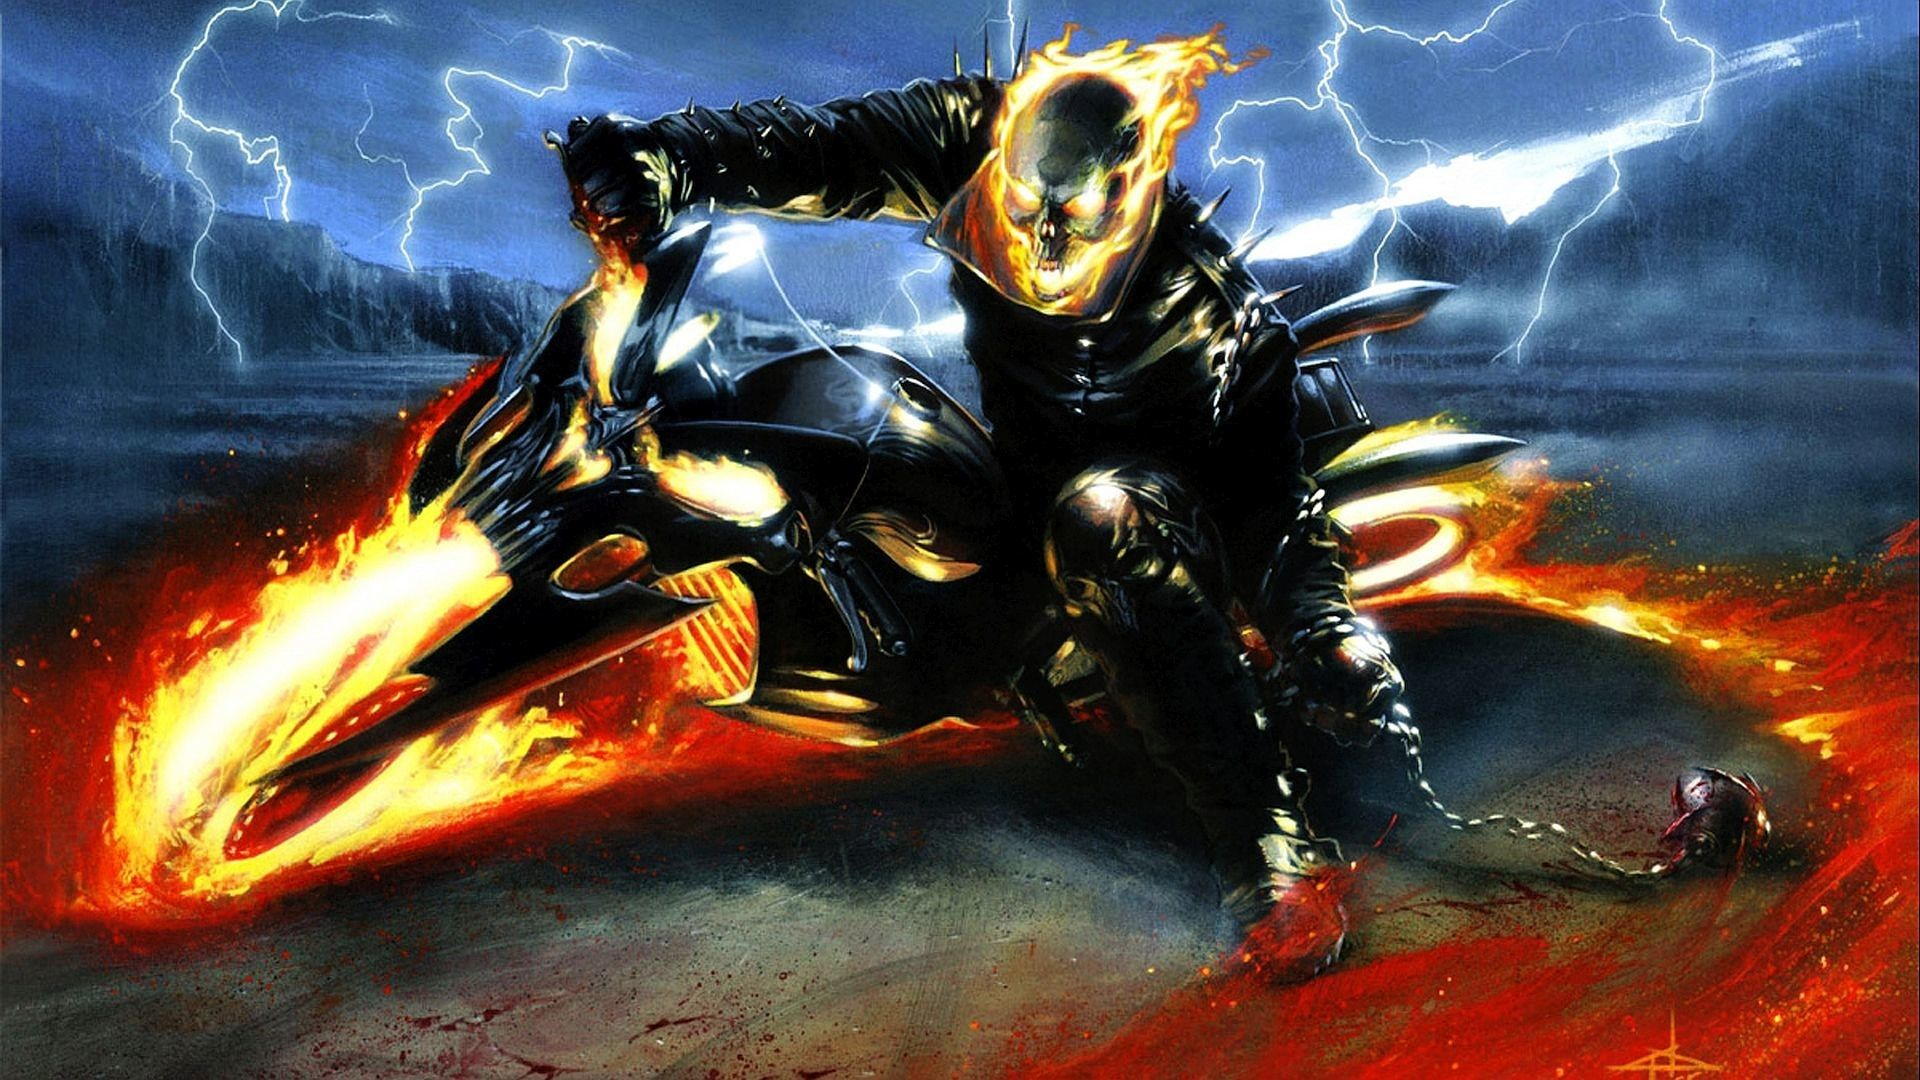 1920x1080 Ghost Rider Bike Wallpapers (58+ images)